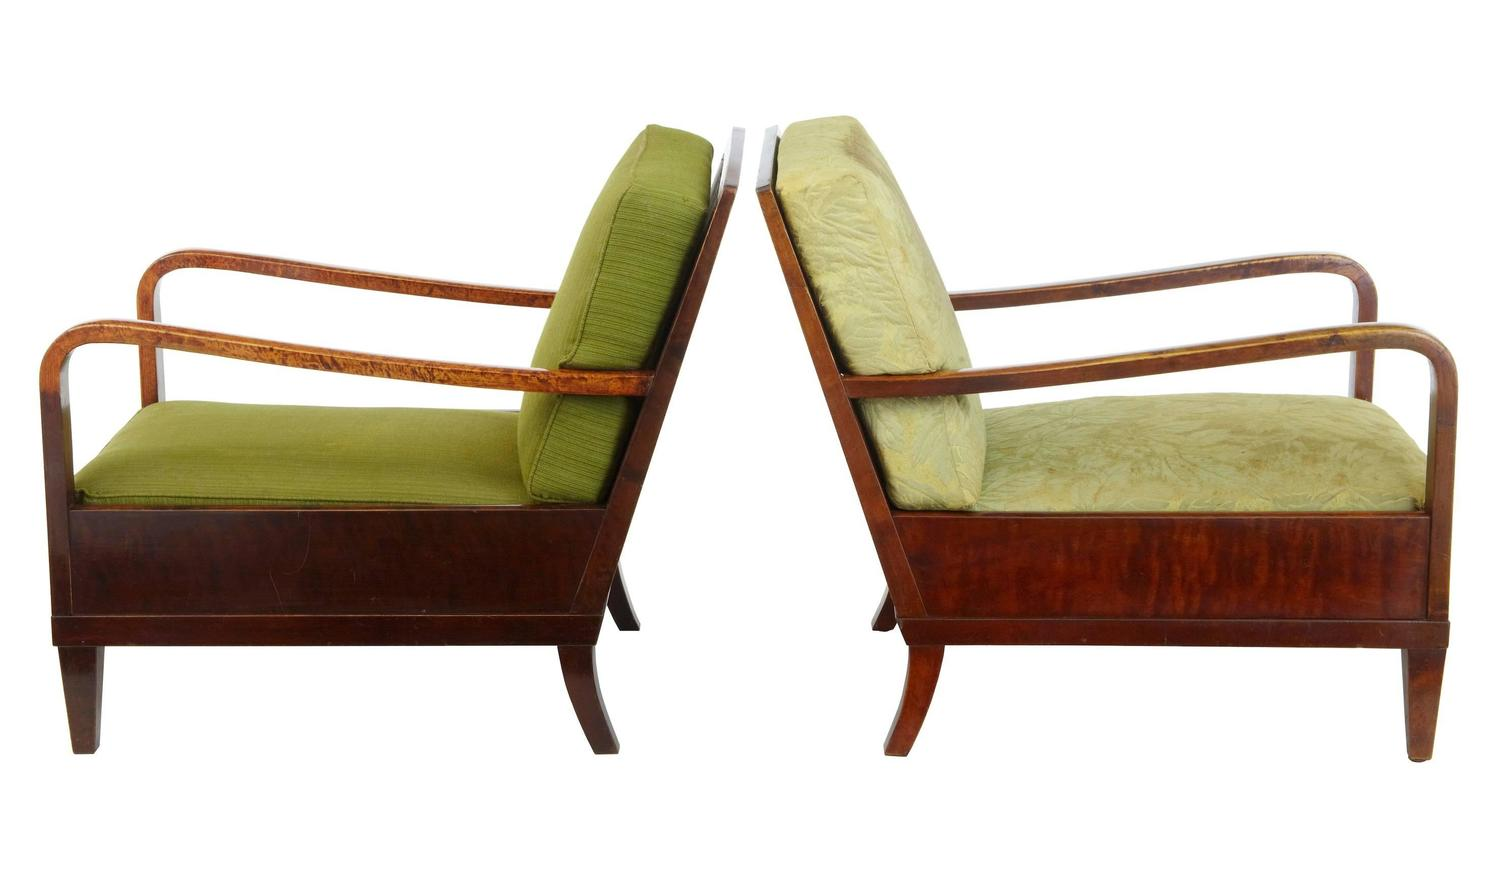 Pair Of 1920s Art Deco Birch Lounge Chairs For Sale At 1stdibs